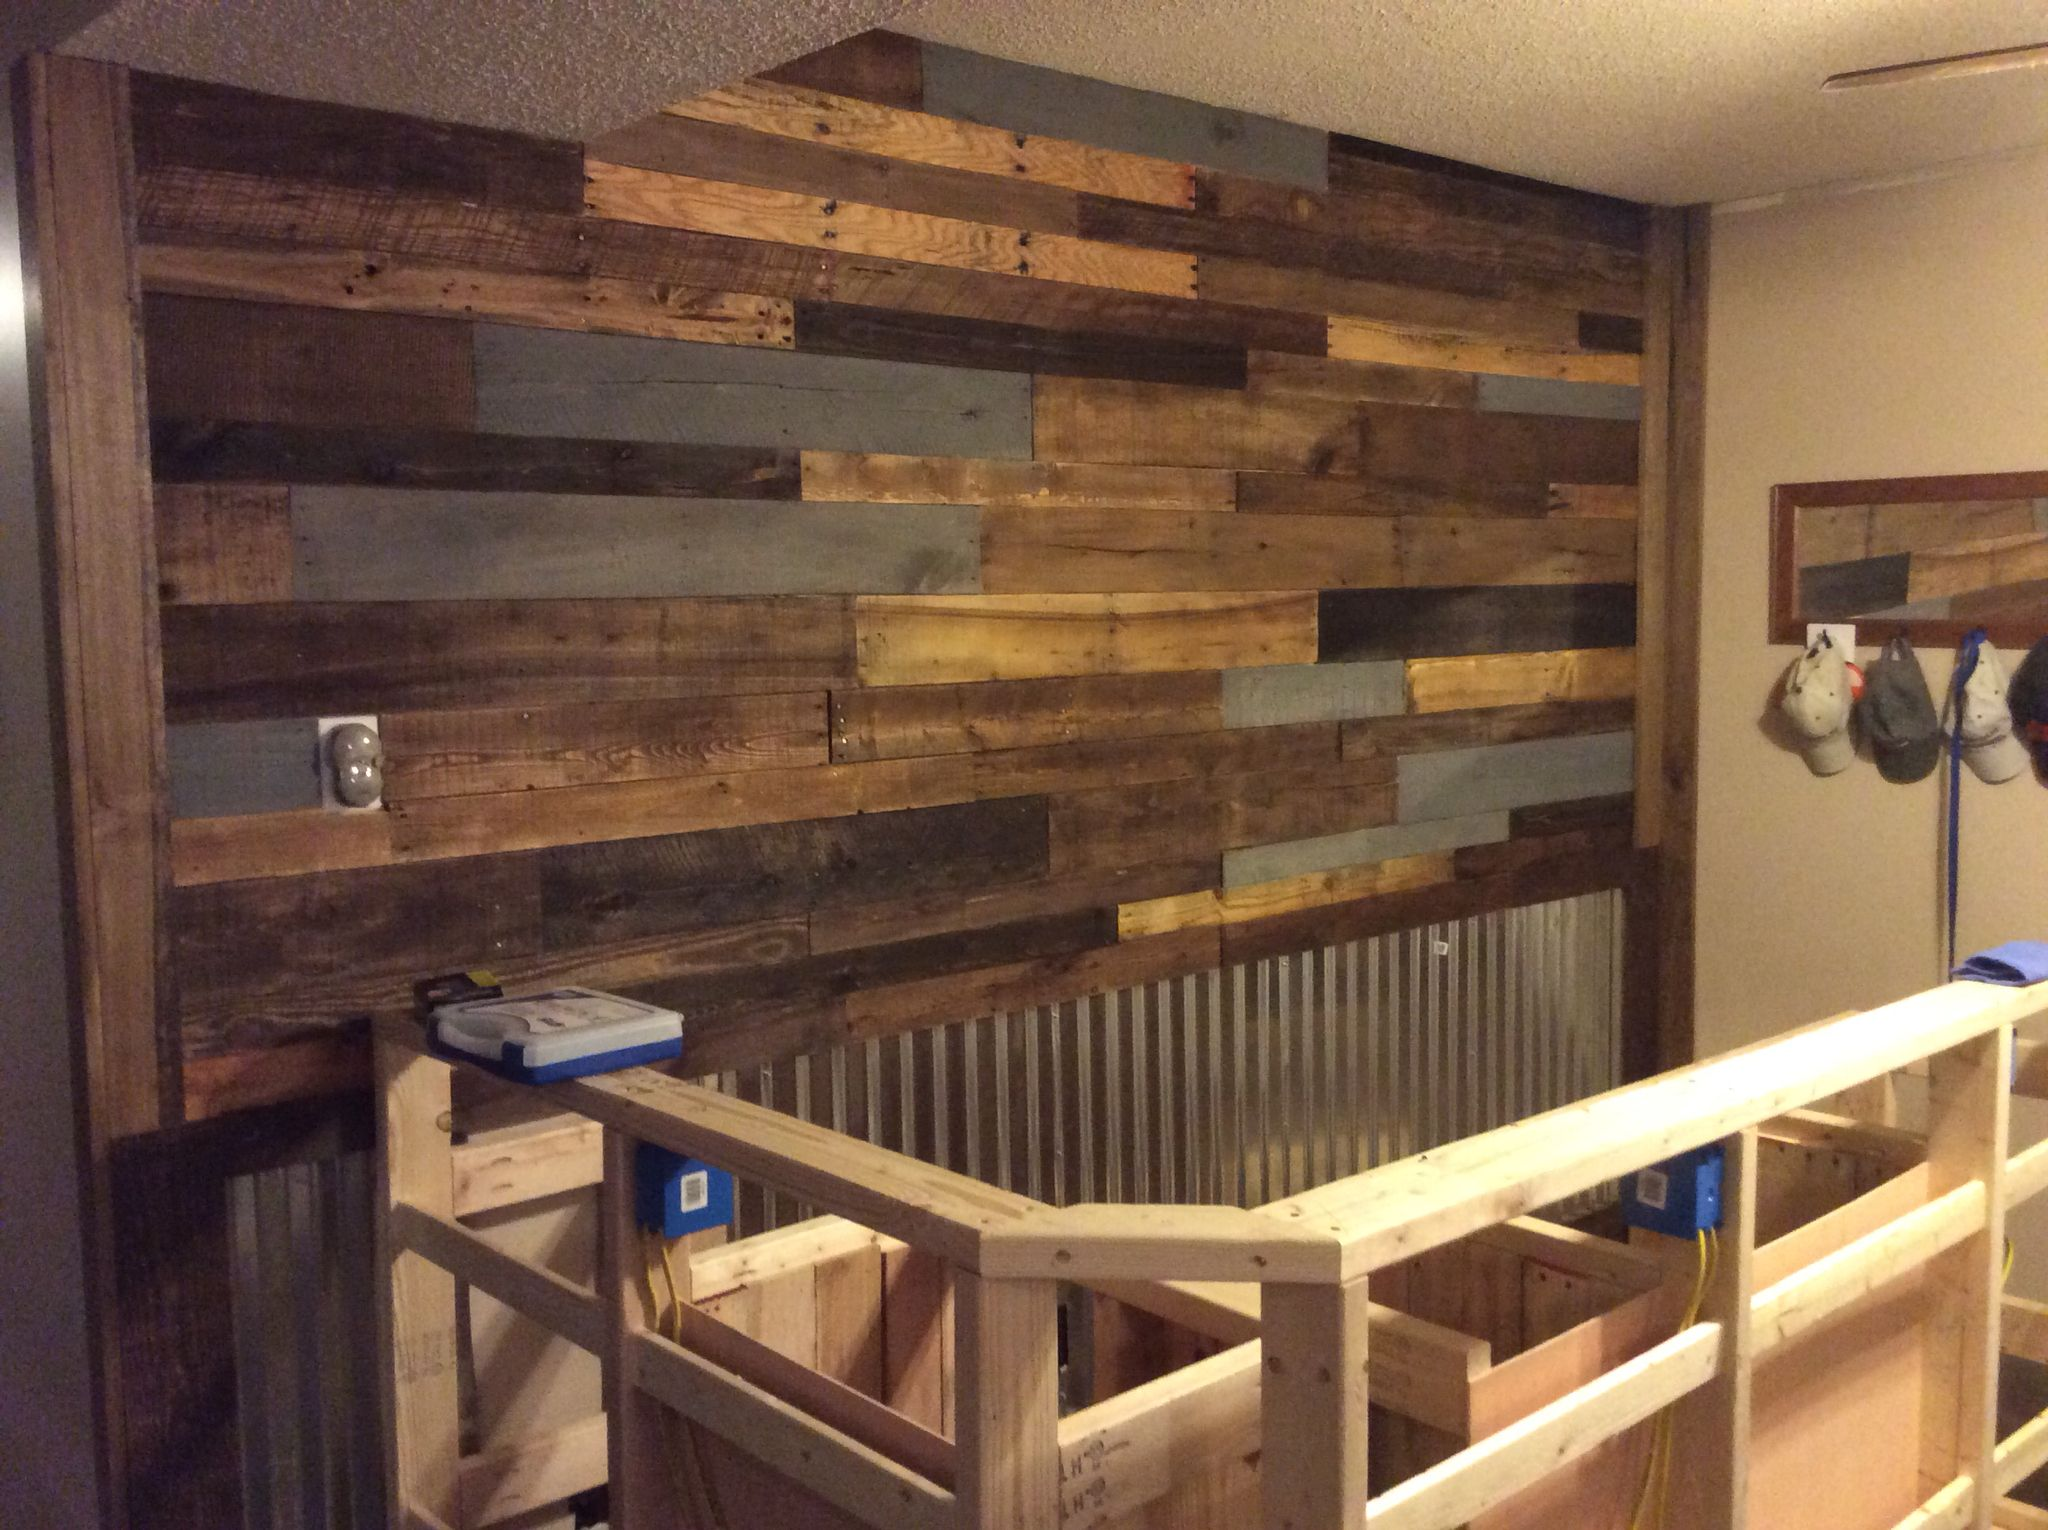 The Pallet Wall Behind The Bar Is Done. One Step Closer.